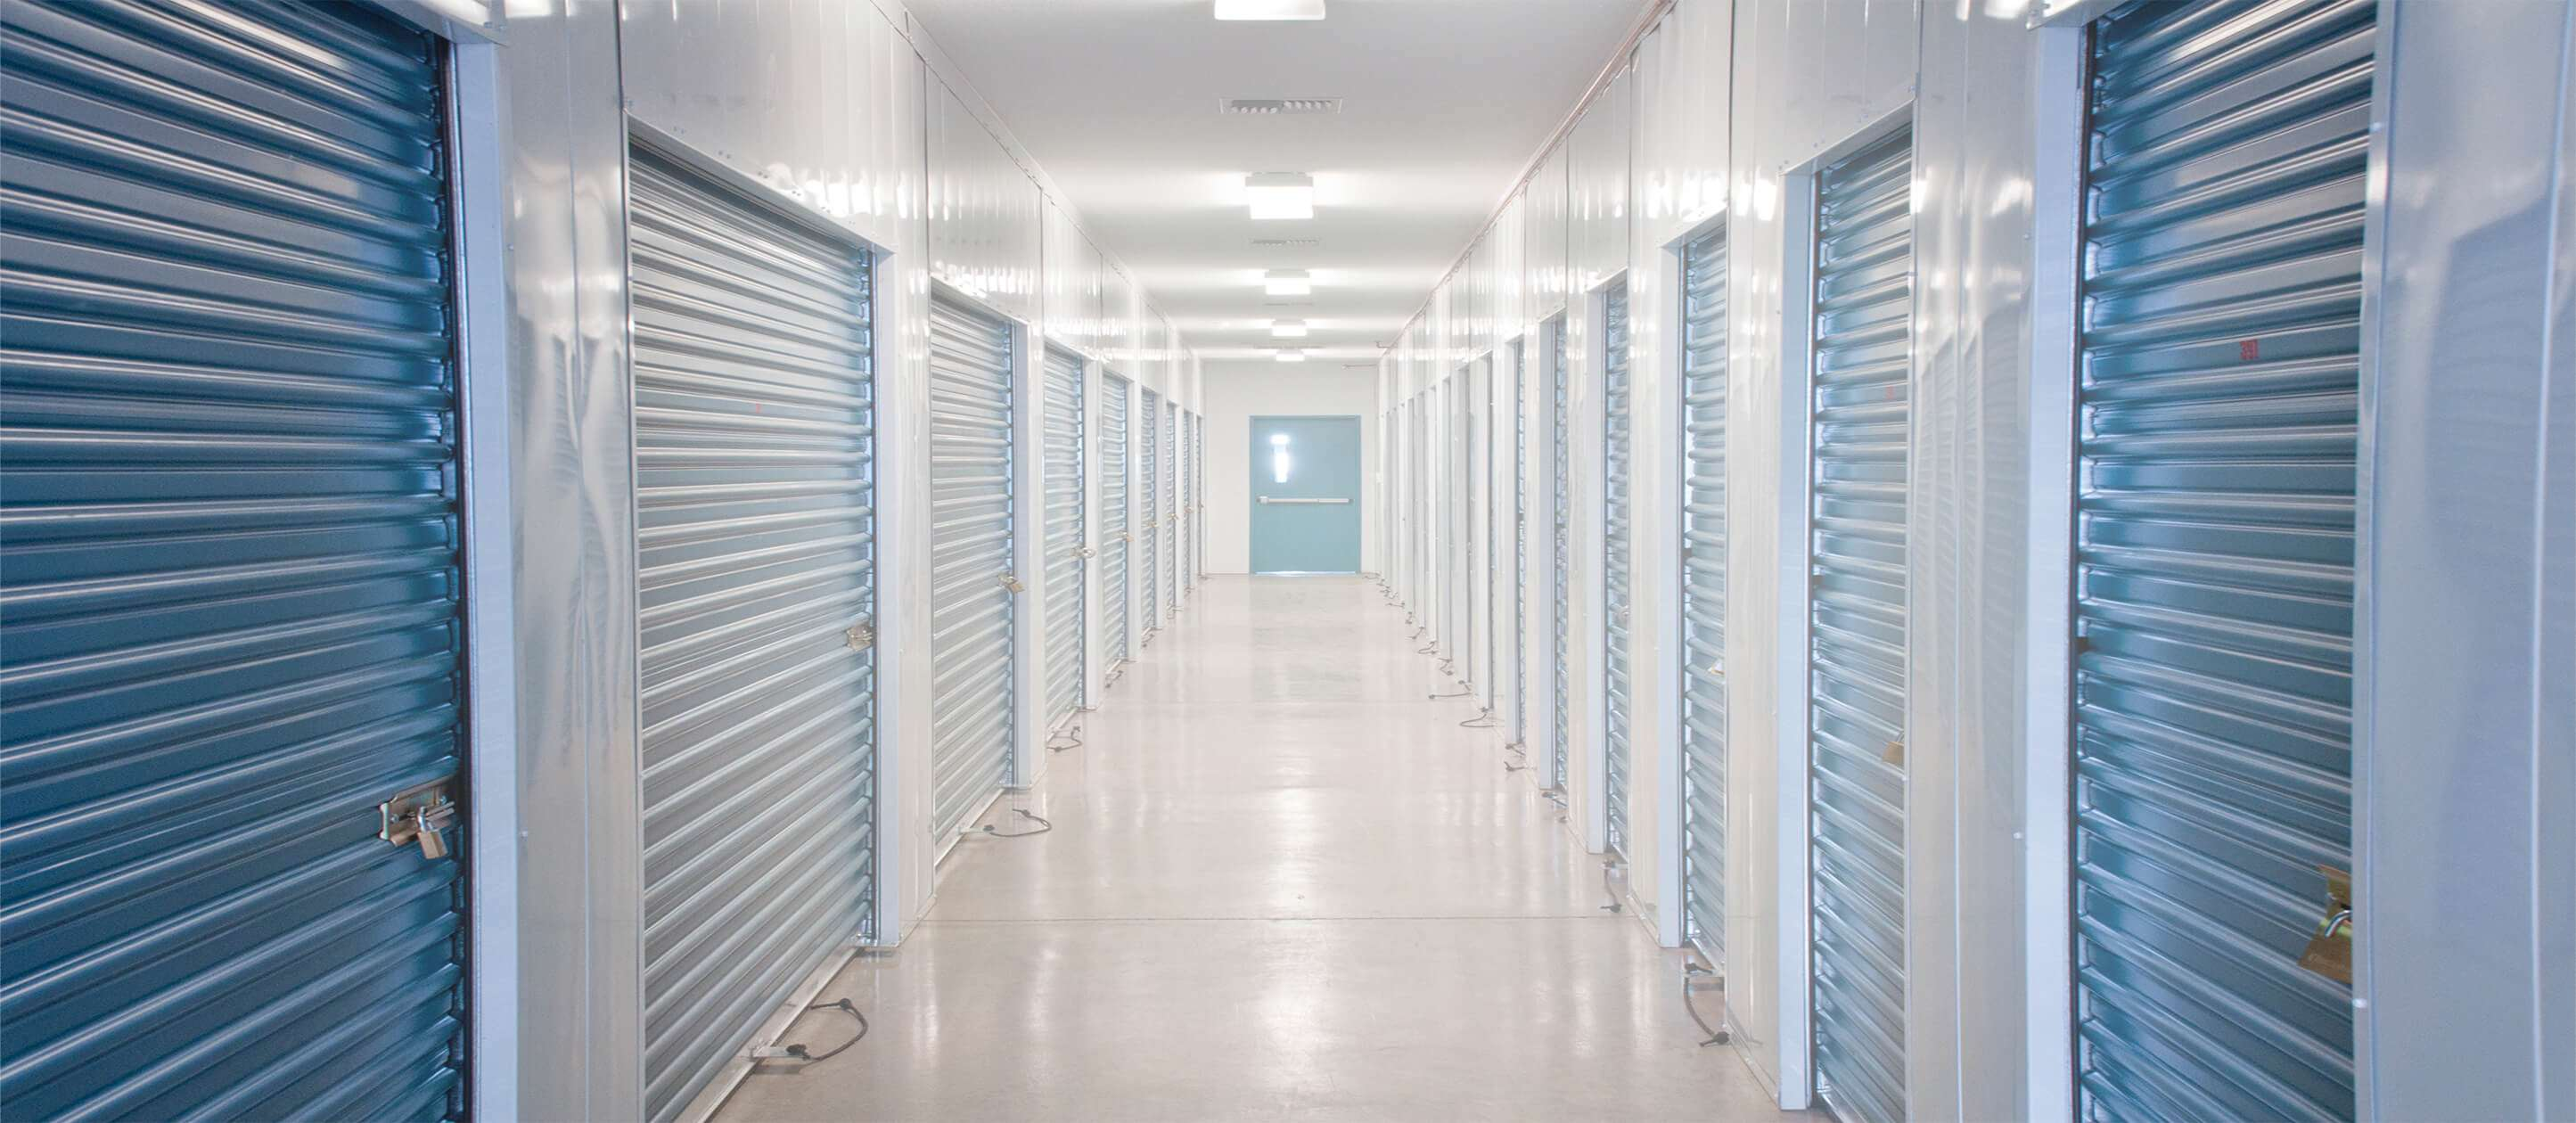 Image of a long corridor of indoor storage units